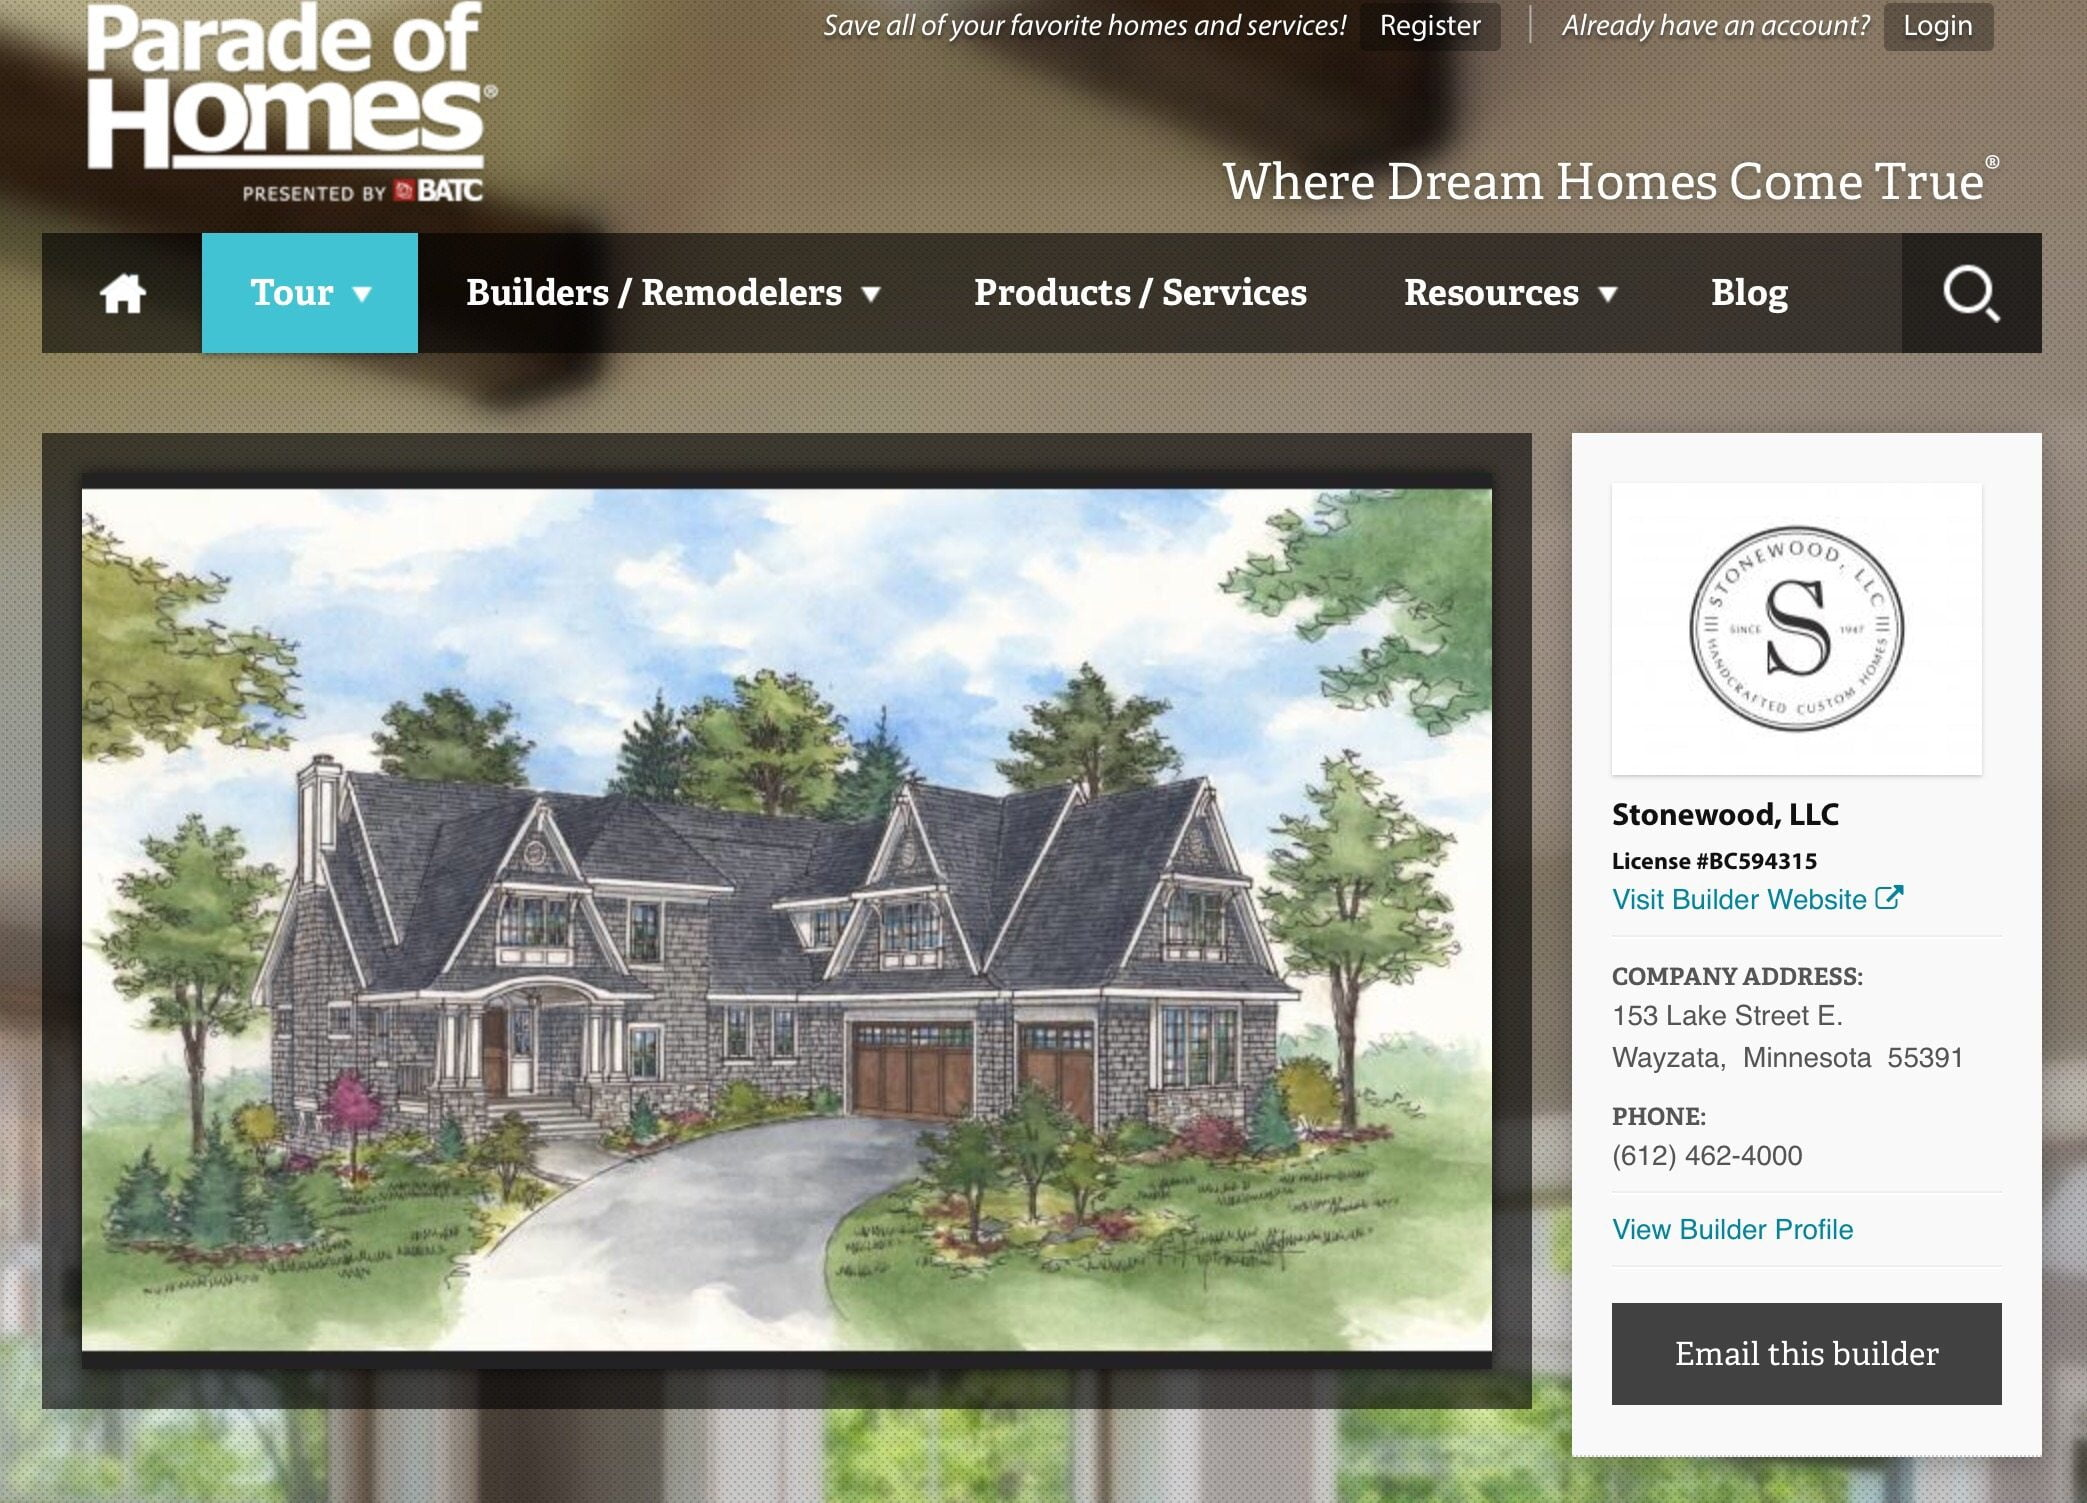 Uncategorized first premier credit manager login - See More At Parade Of Homes Uncategorized